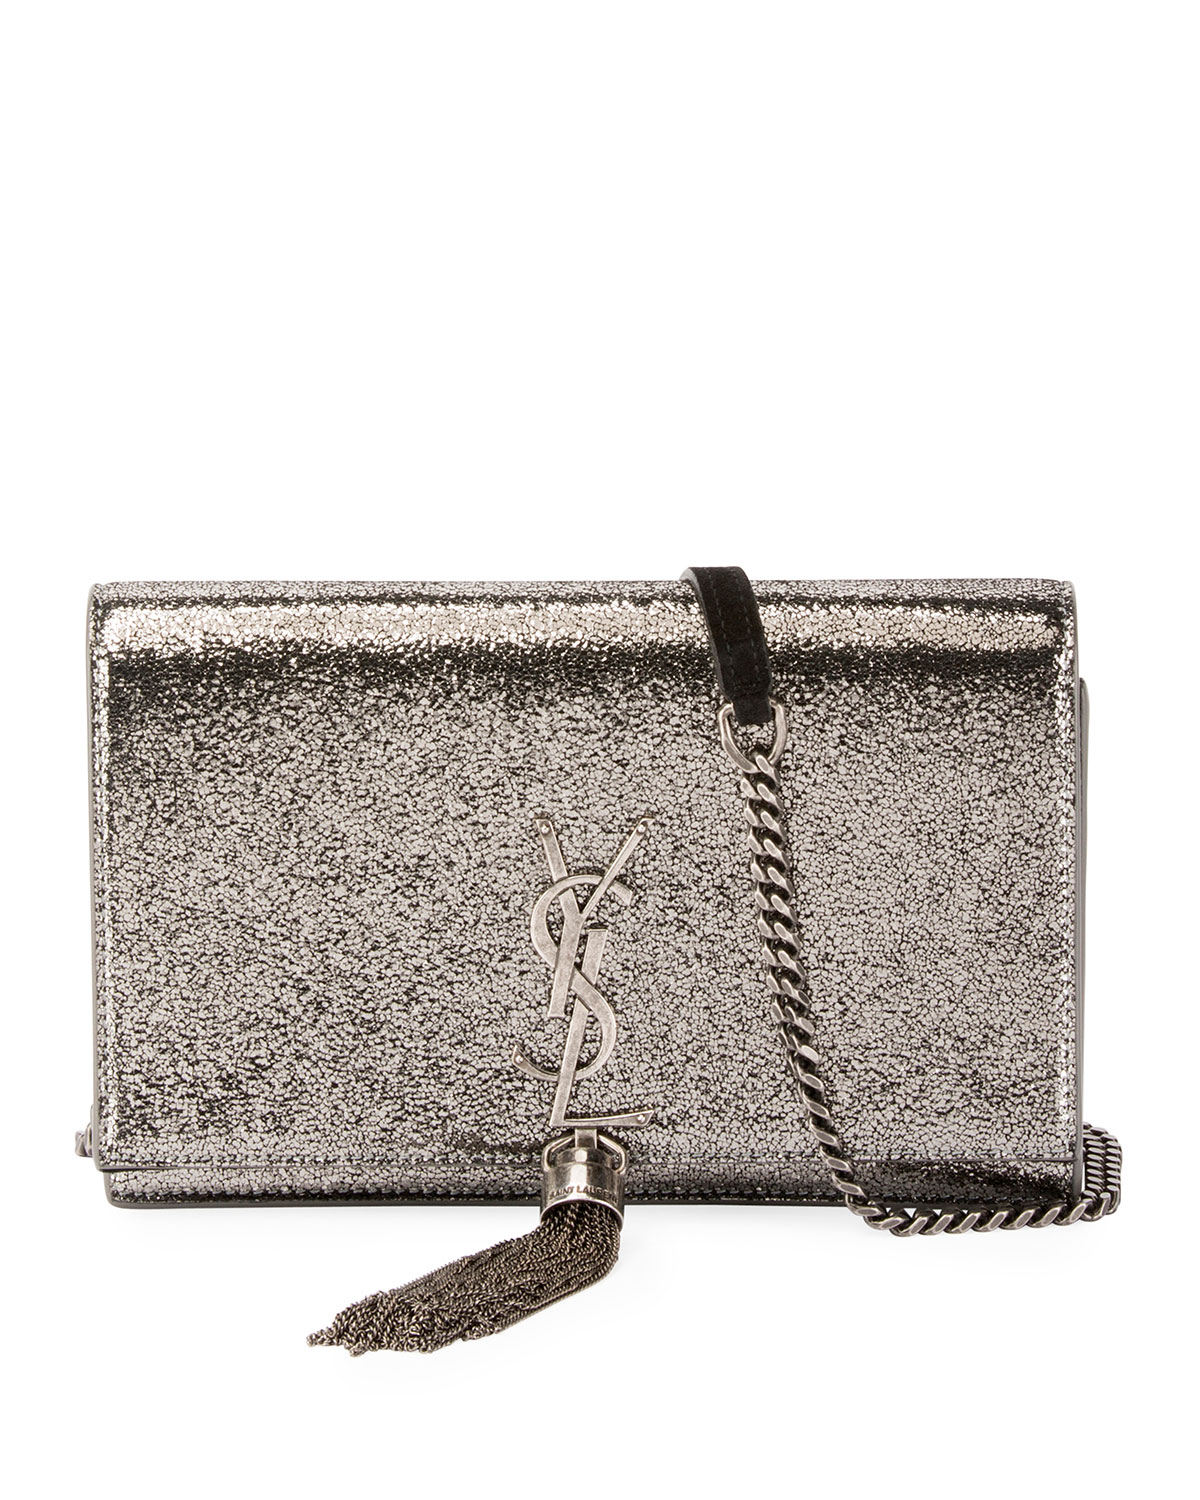 Saint LaurentKate Monogram YSL Small Crackled Metallic Tassel Wallet on  Chain - Light Bronze Hardware efcc6fda52215